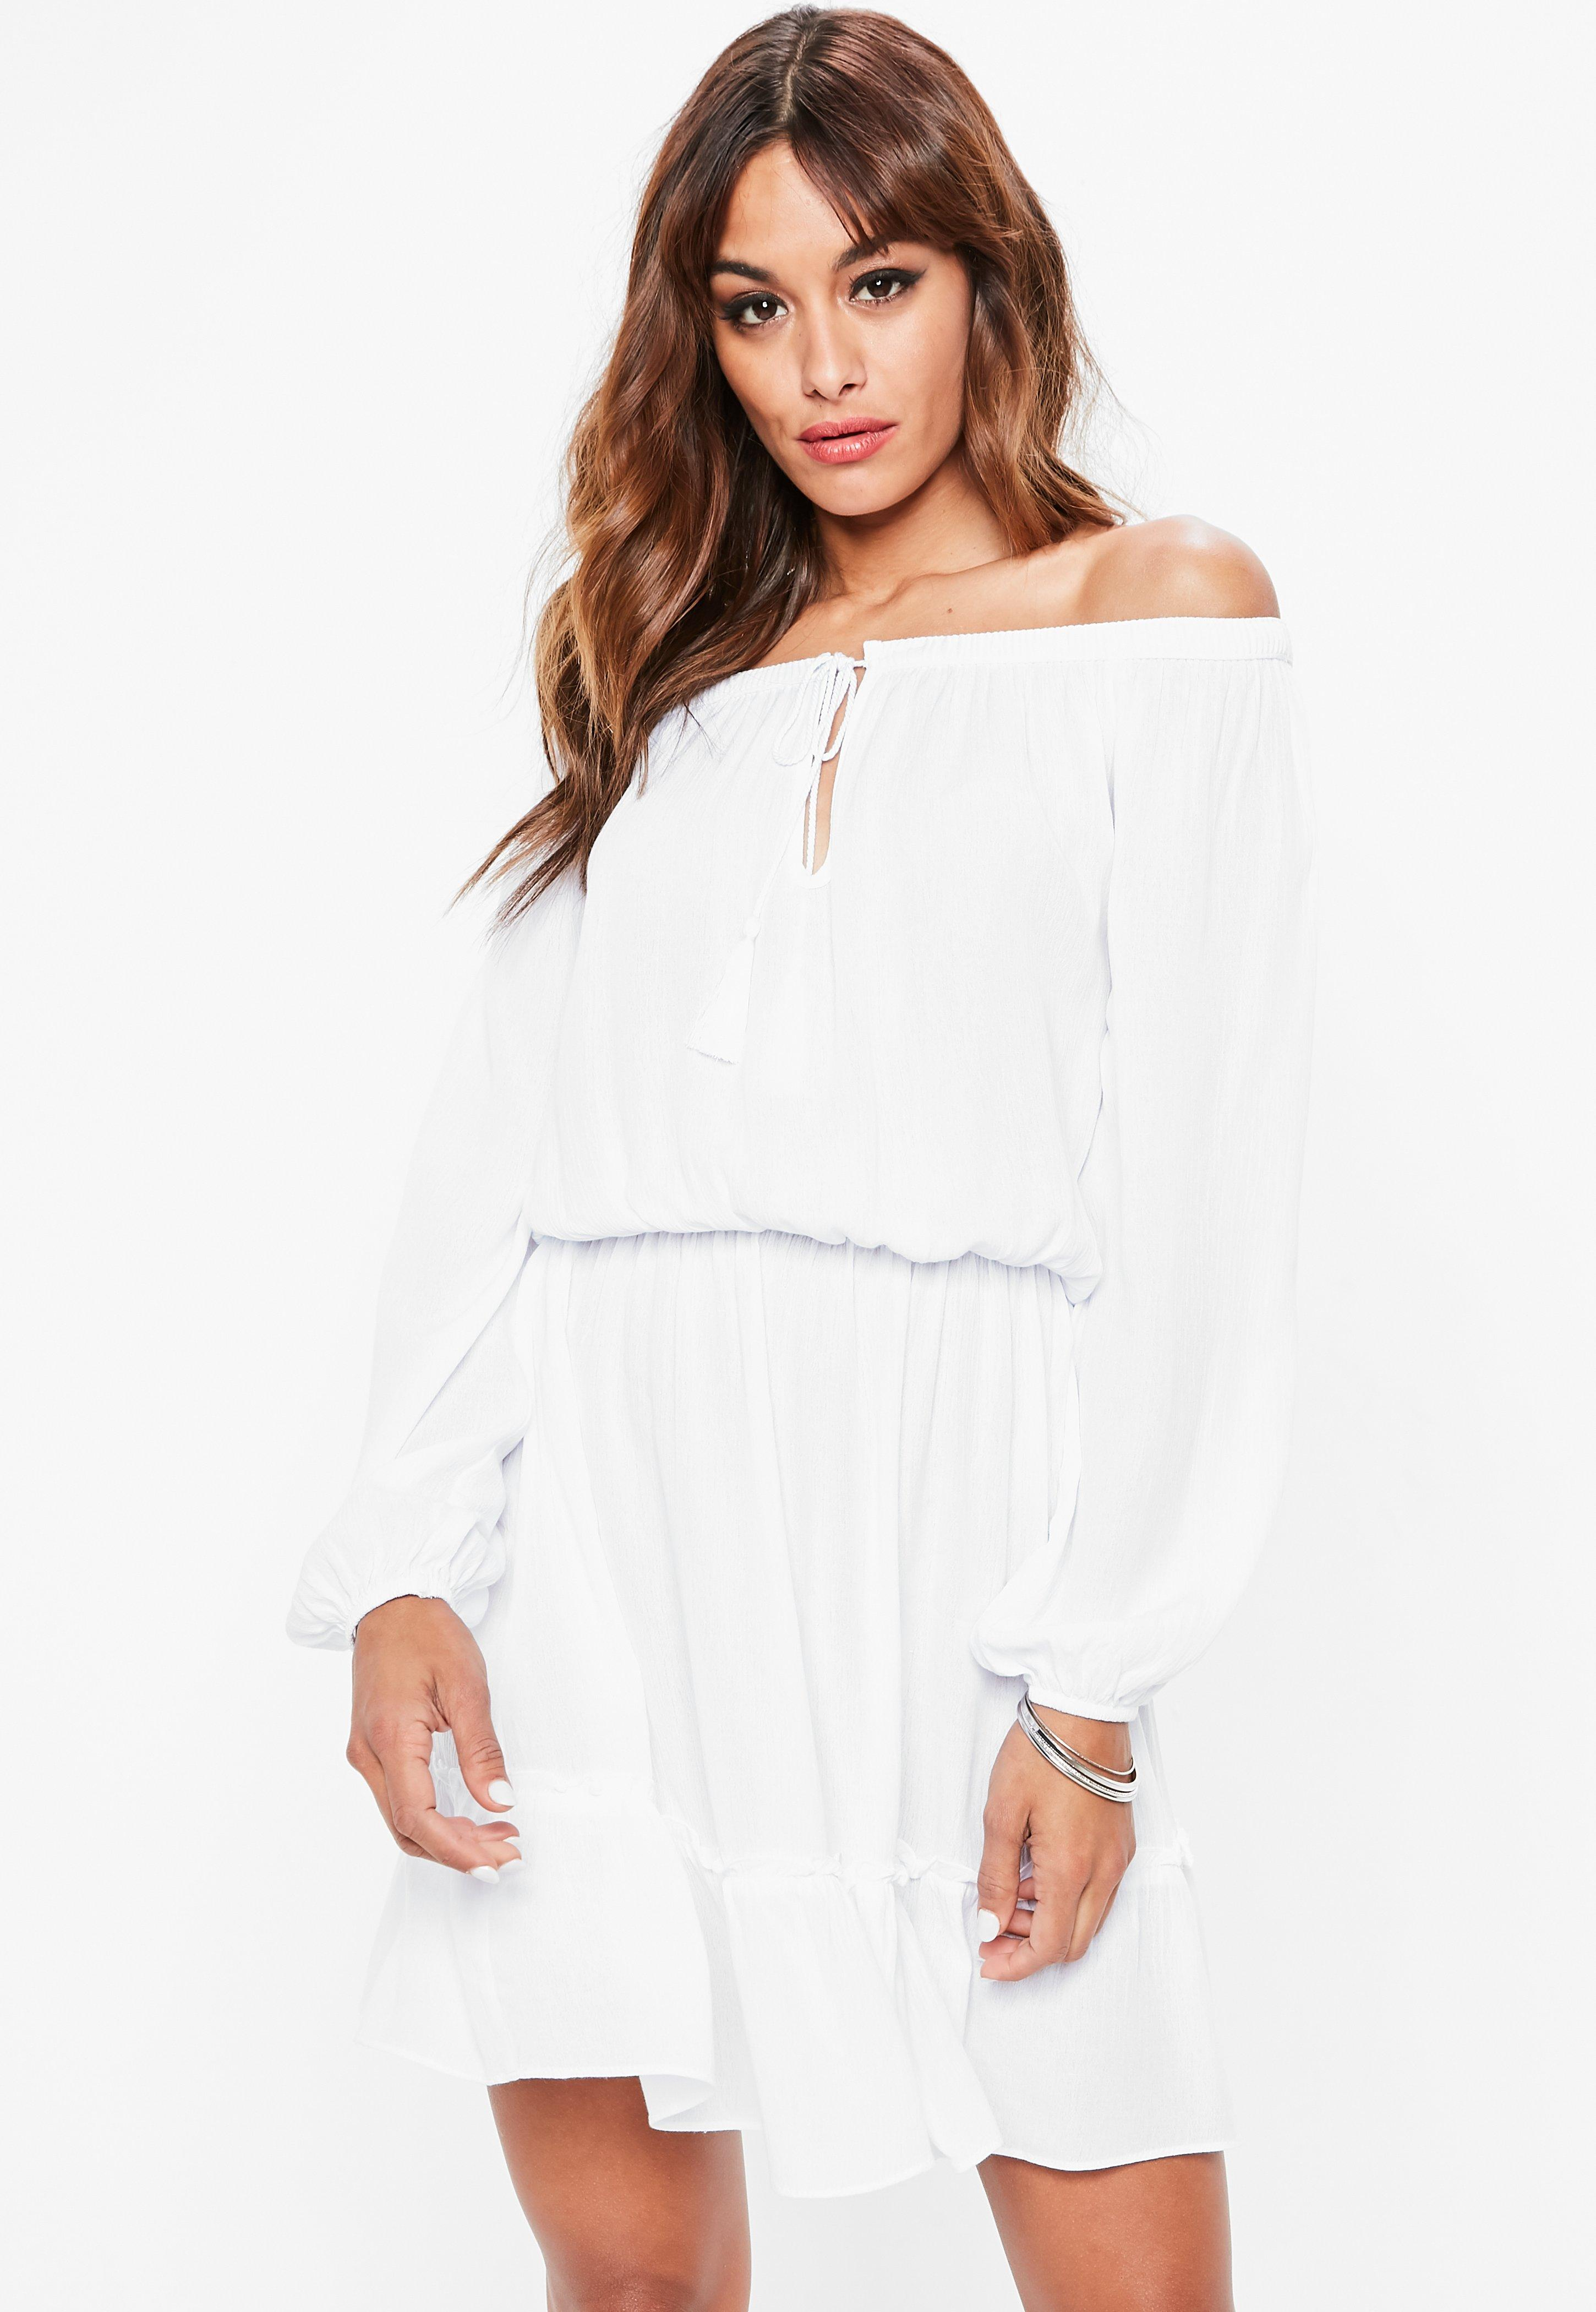 e976dcee71 Off the Shoulder Dresses - Bardot Dresses Online